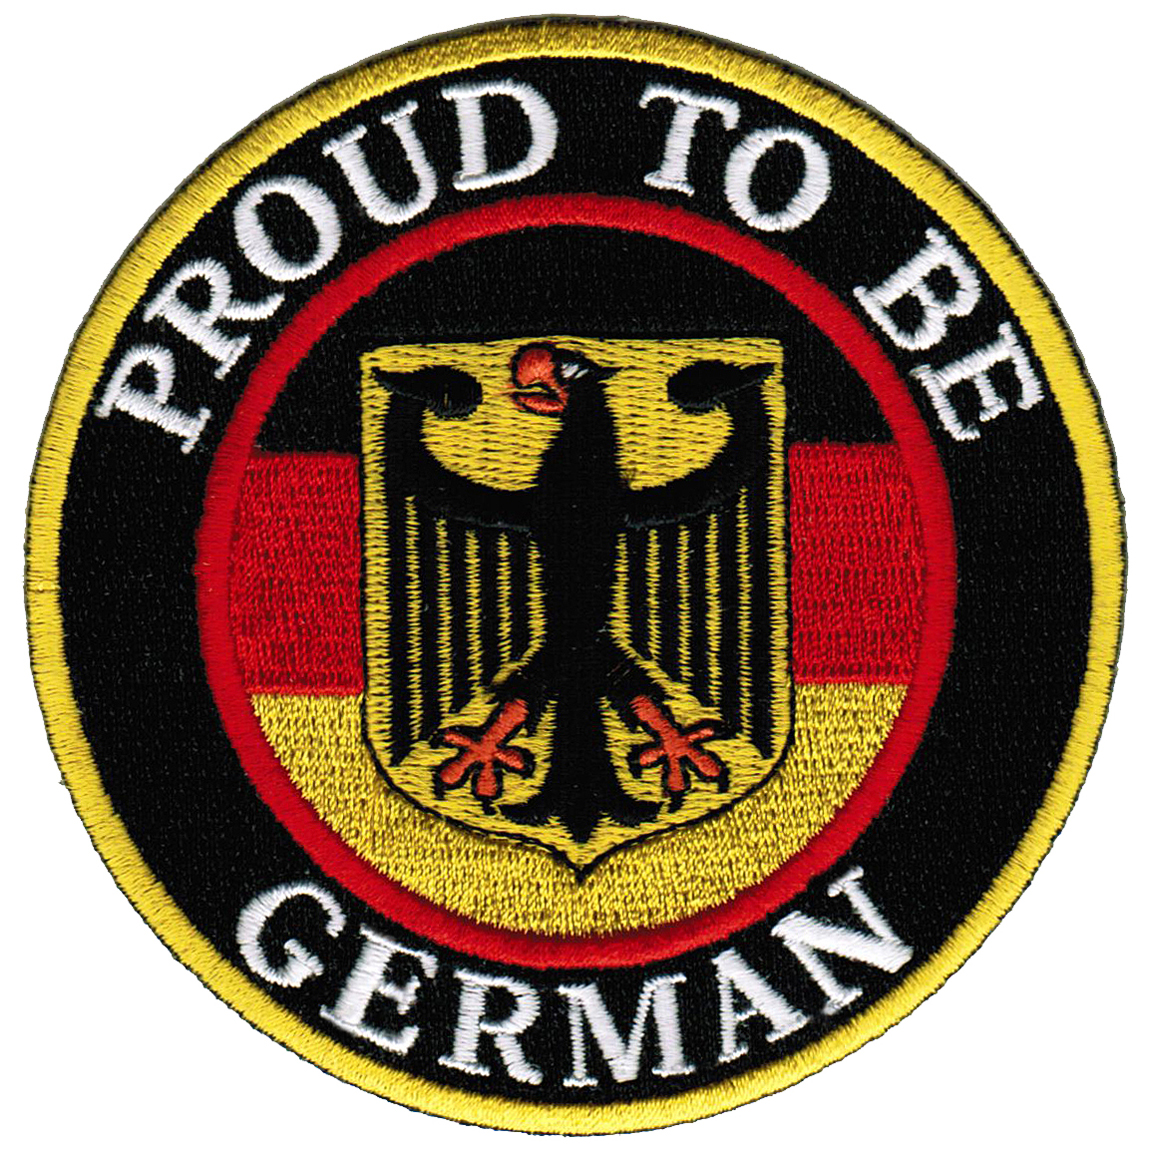 Proud To Be German Iron-On Embroidered Biker Patch